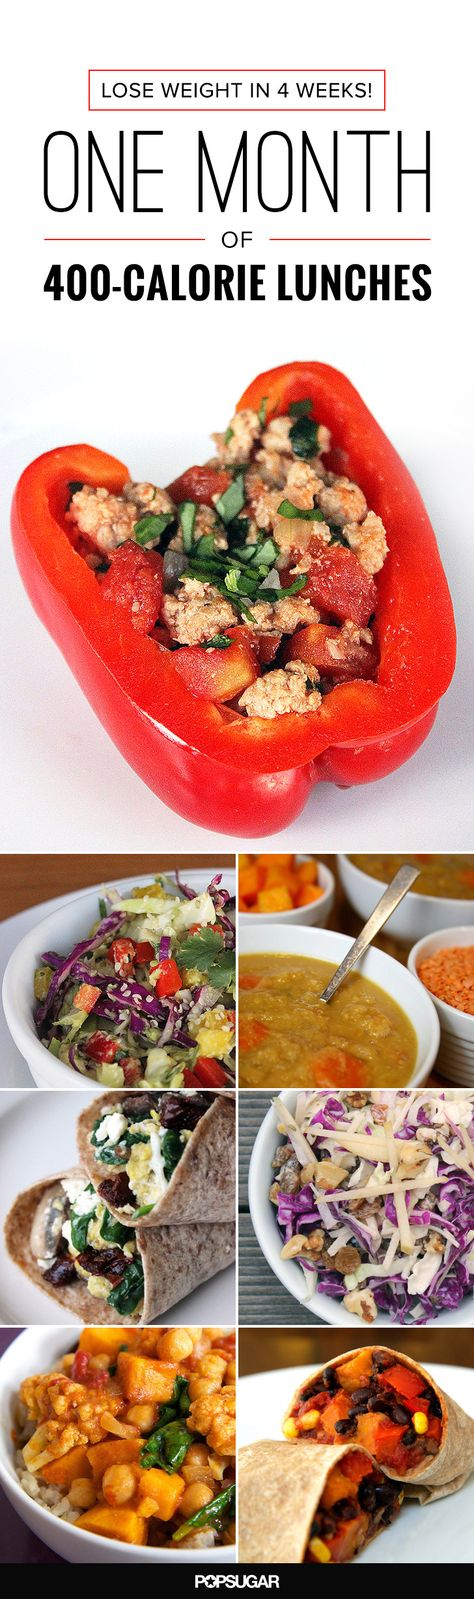 This plan maps out four weeks, Monday through Friday, with each day's meal consisting of 400 calories or fewer. There's a theme for each week to keep your taste buds from getting bored, complete with simple recipes you can whip up the night before.